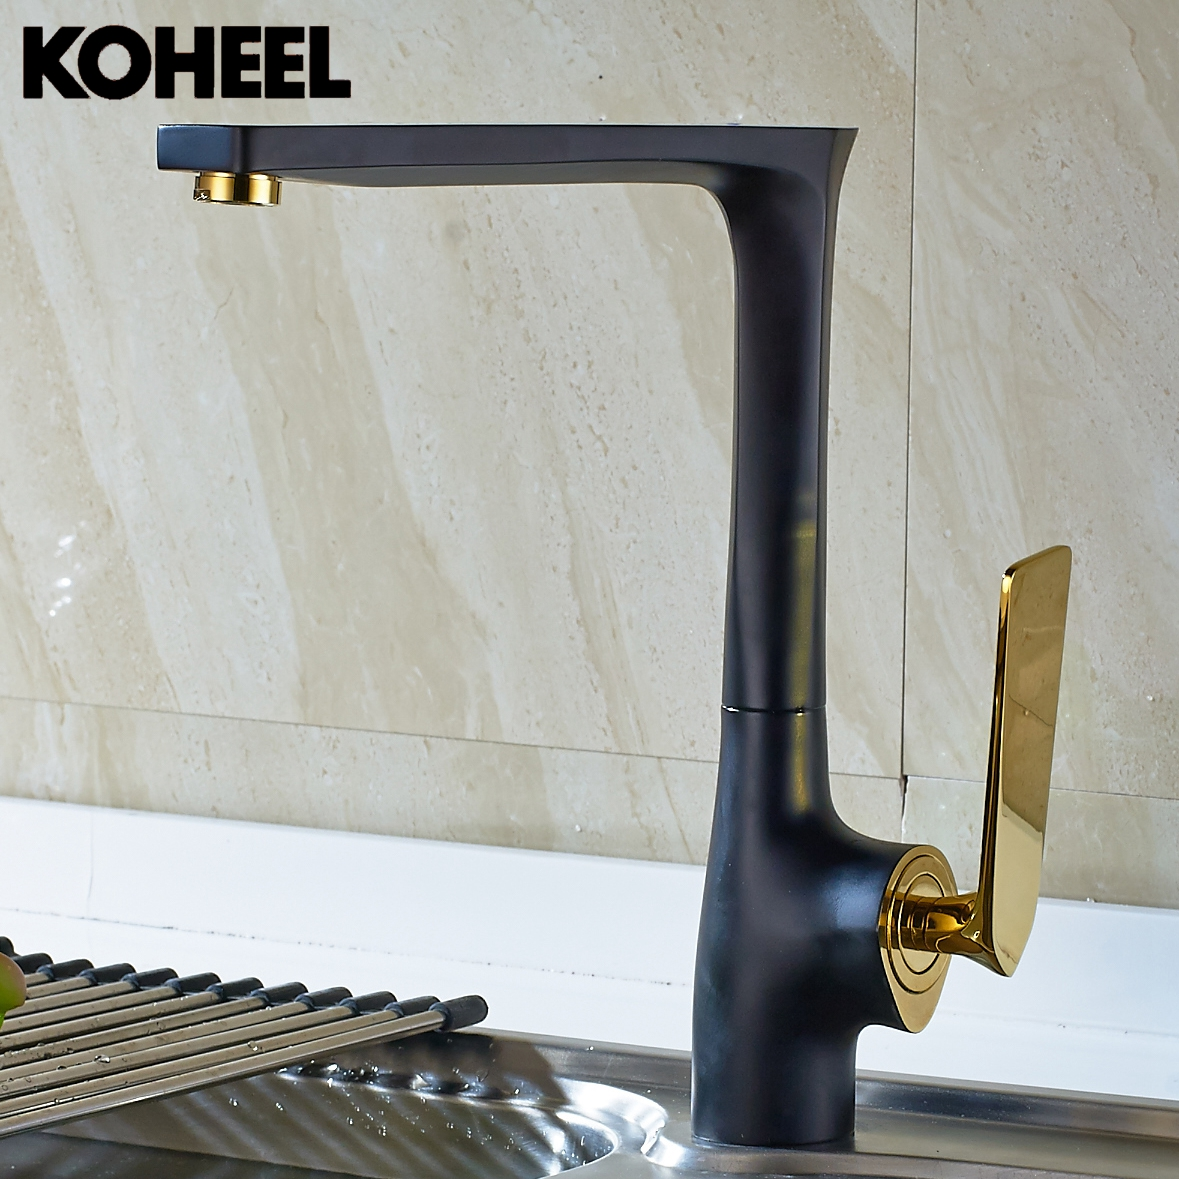 Kitchen Faucet Black Brass Hot And Cold Water Tap Sink Mixer Tap Wash Basin Faucet 5 Colors Basin Mixer High Quality K high quality new kitchen faucet antique black brass hot and cold water mixer sink mixer tap wash basin faucet oil rubbed bronze